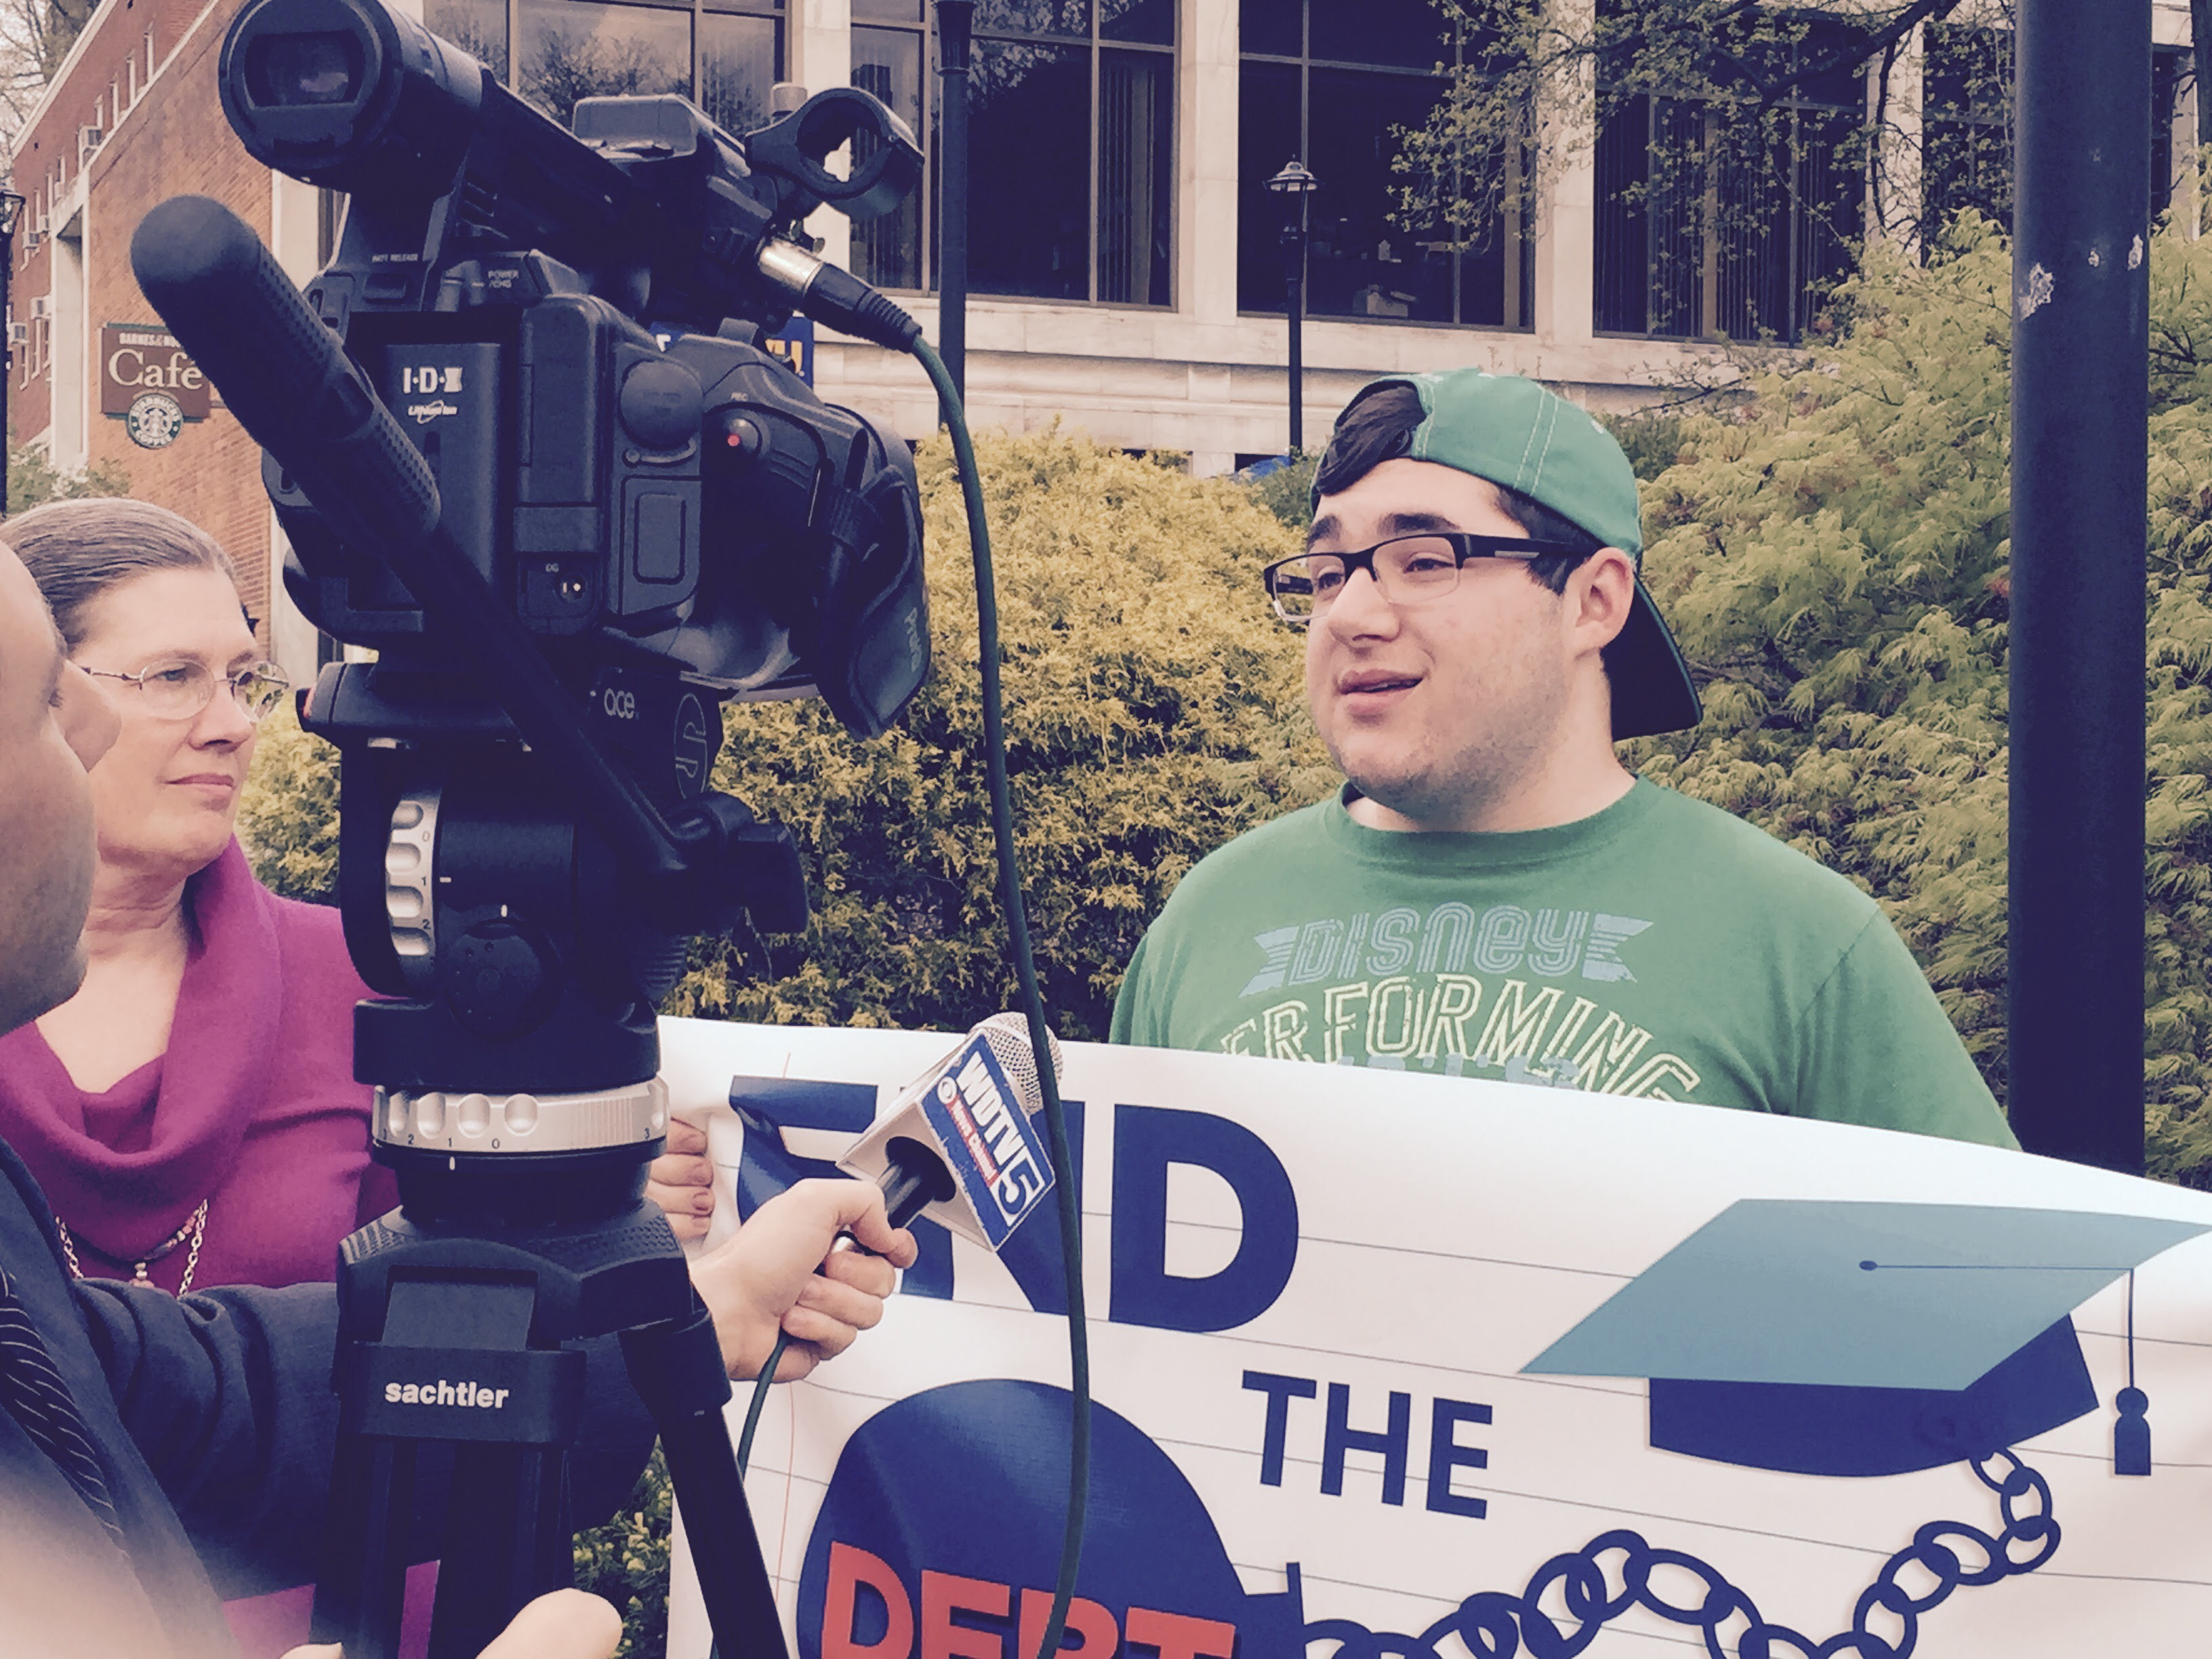 Students across the country took action to demand debt-free college